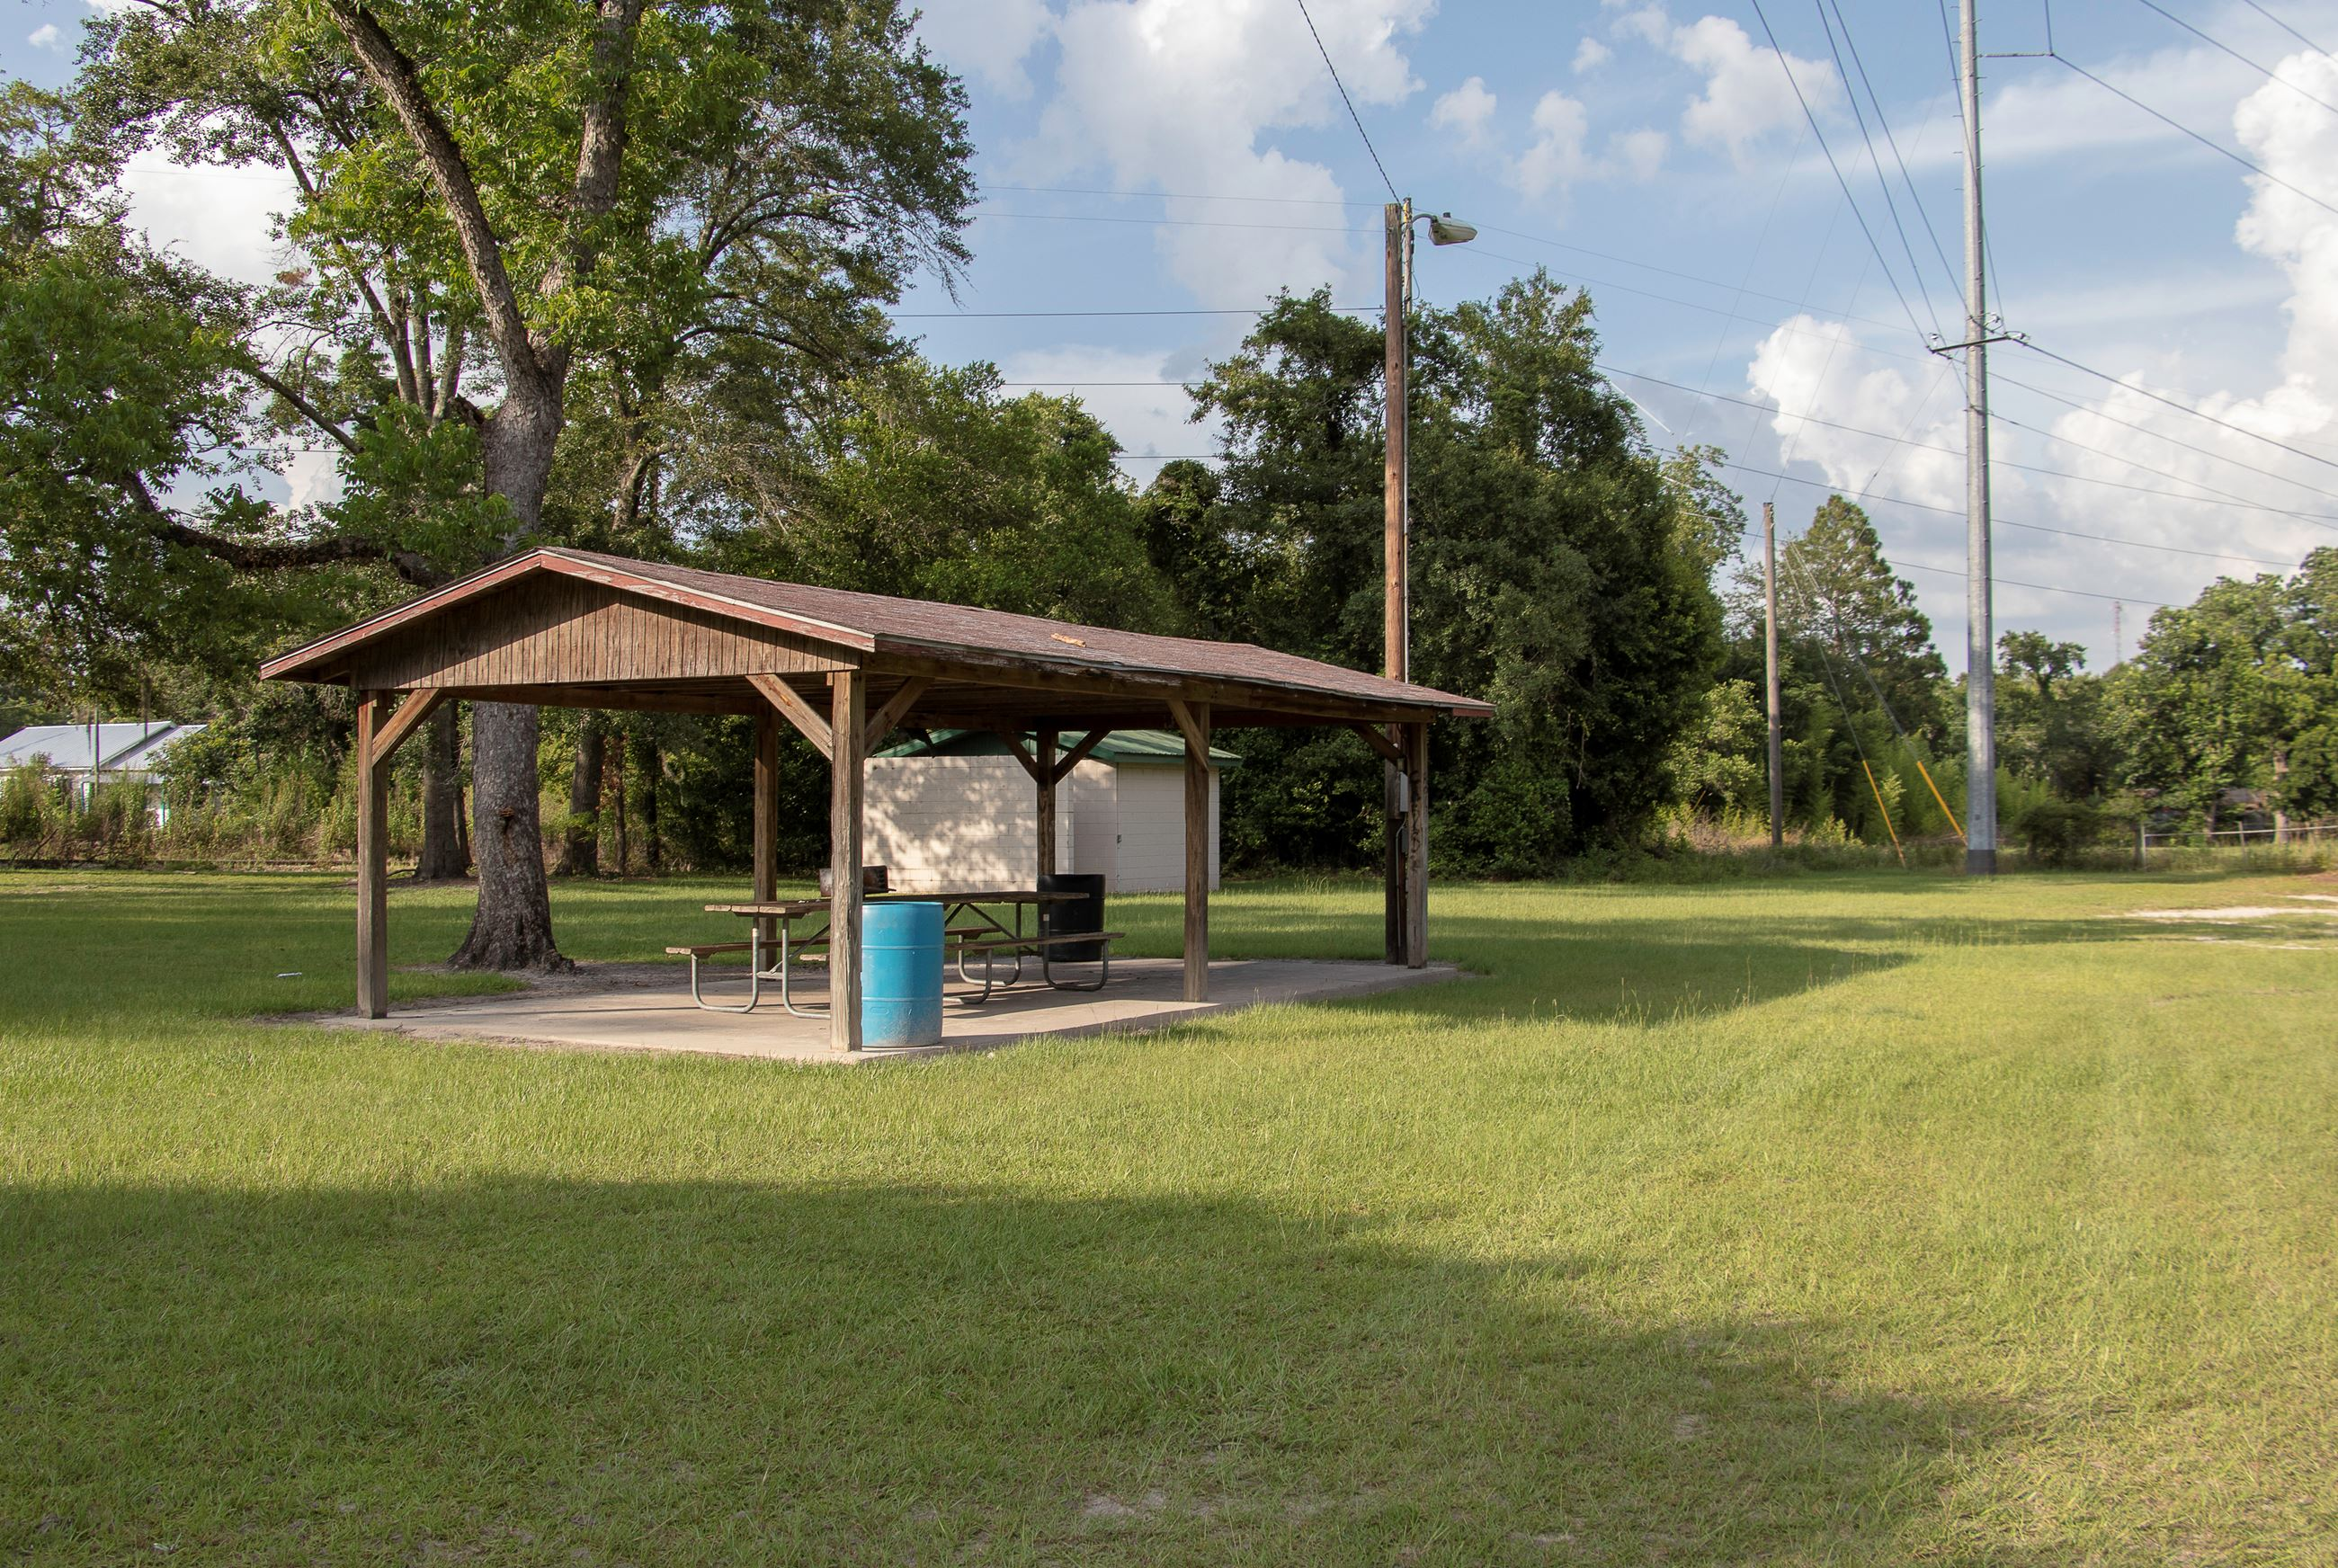 An image of an brown picnic shelter in a park.